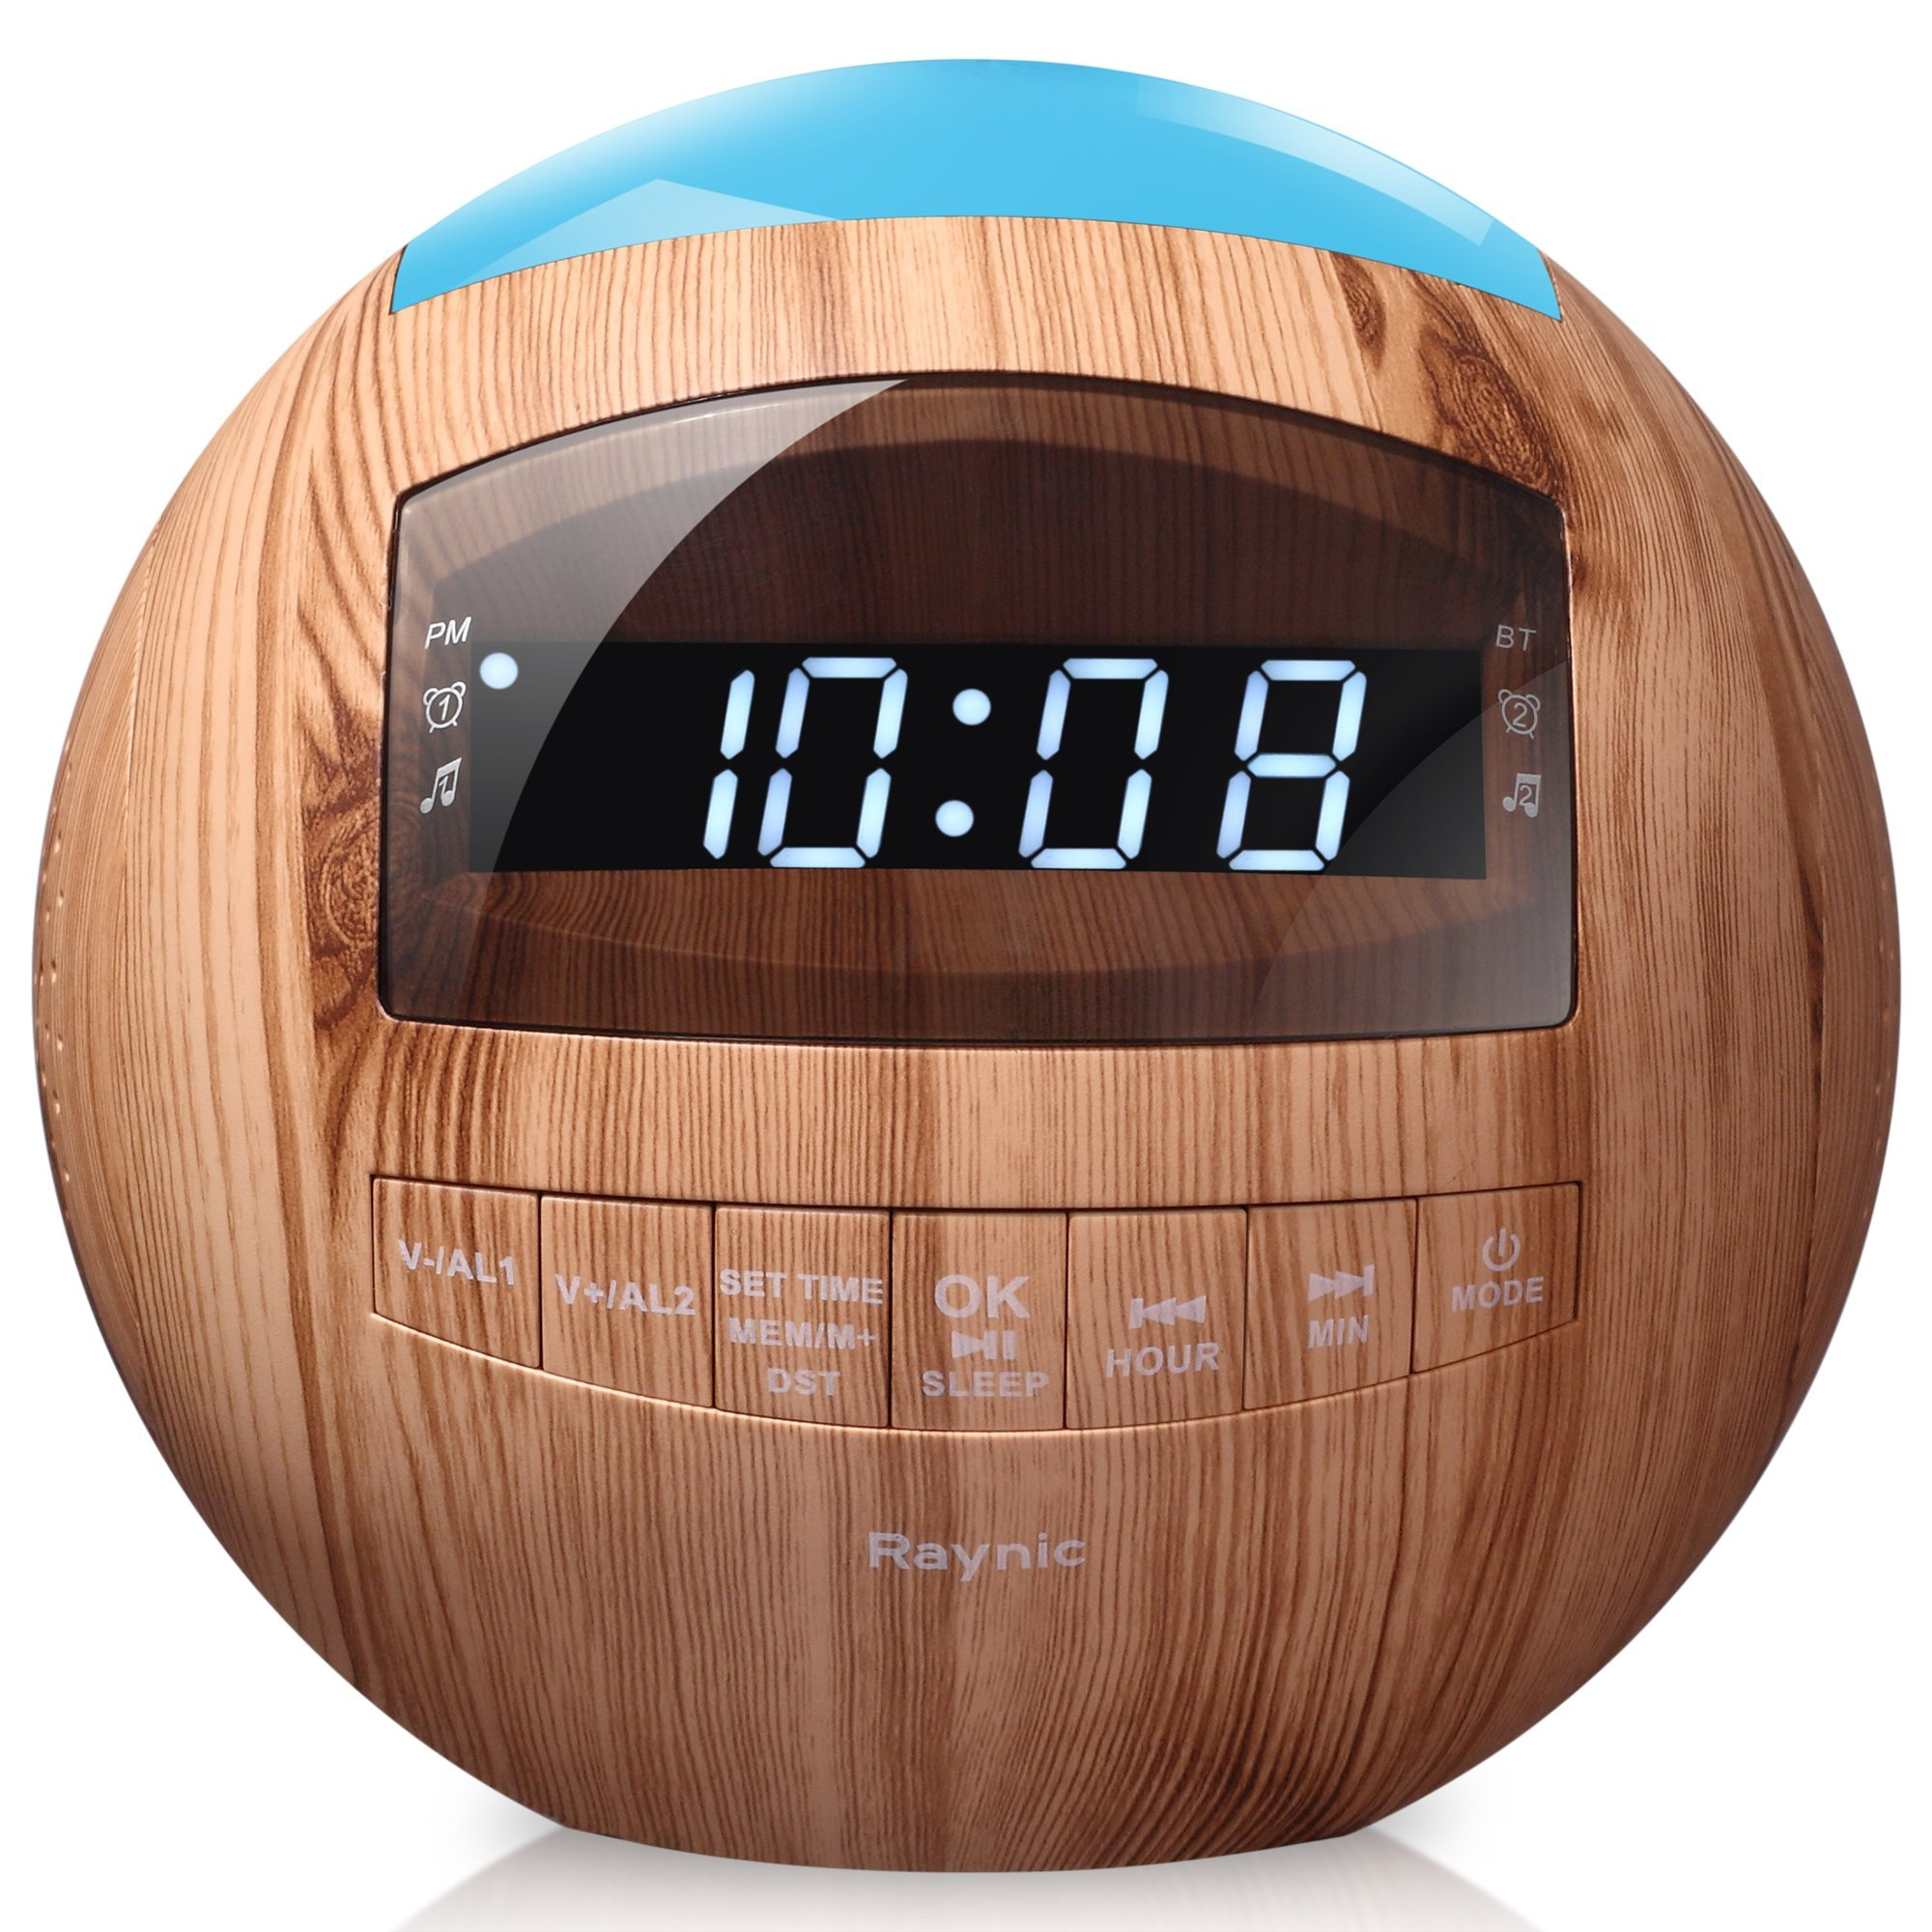 8-in-1 Bluetooth Alarm Clock Radio (Digital) Dual USB Charging Ports, FM Stereo, Dimmable LED Display, Nap & Sleep Timers, Snooze, Multi-Color Night Light (Wooden)